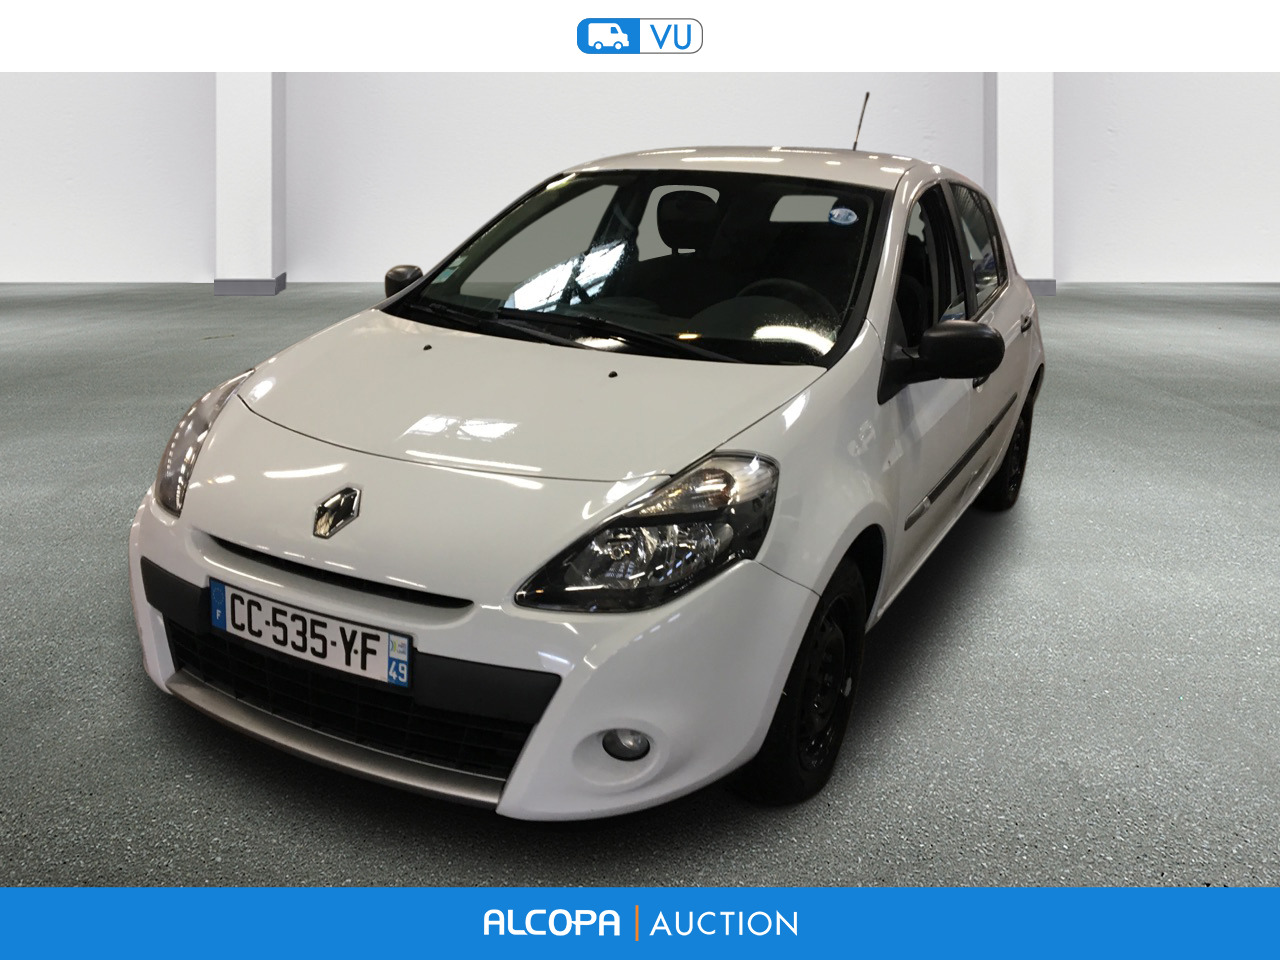 renault clio iii 03 2009 12 2014 clio iii dci 75 eco2 expression clim euro 5 alcopa auction. Black Bedroom Furniture Sets. Home Design Ideas